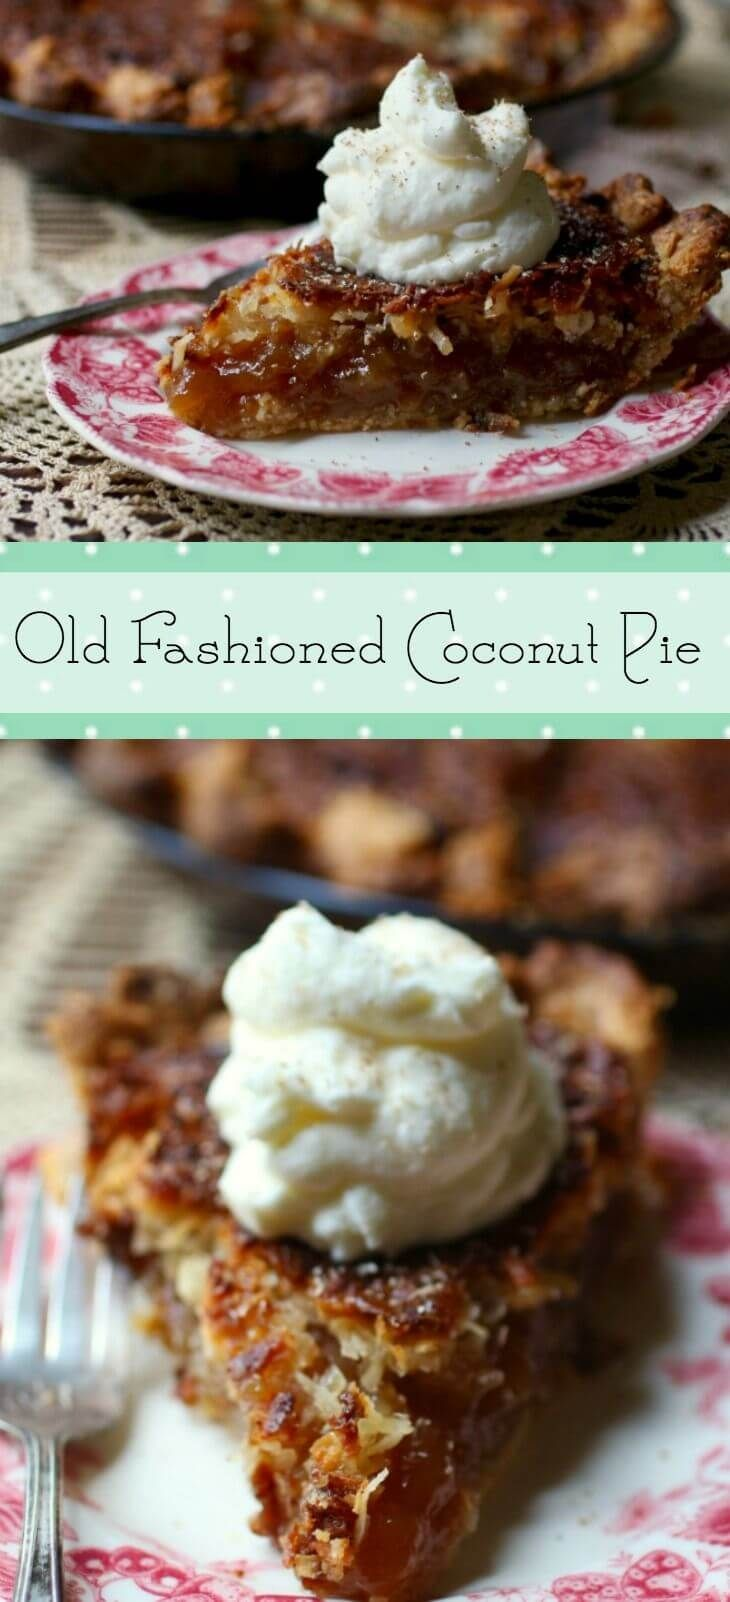 This Southern coconut pie recipe is sweet and gooey - full of old fashioned goodness. I found this recipe in a very old cookbook and had to try it! Super easy and so unusual. From RestlessChipotle.com